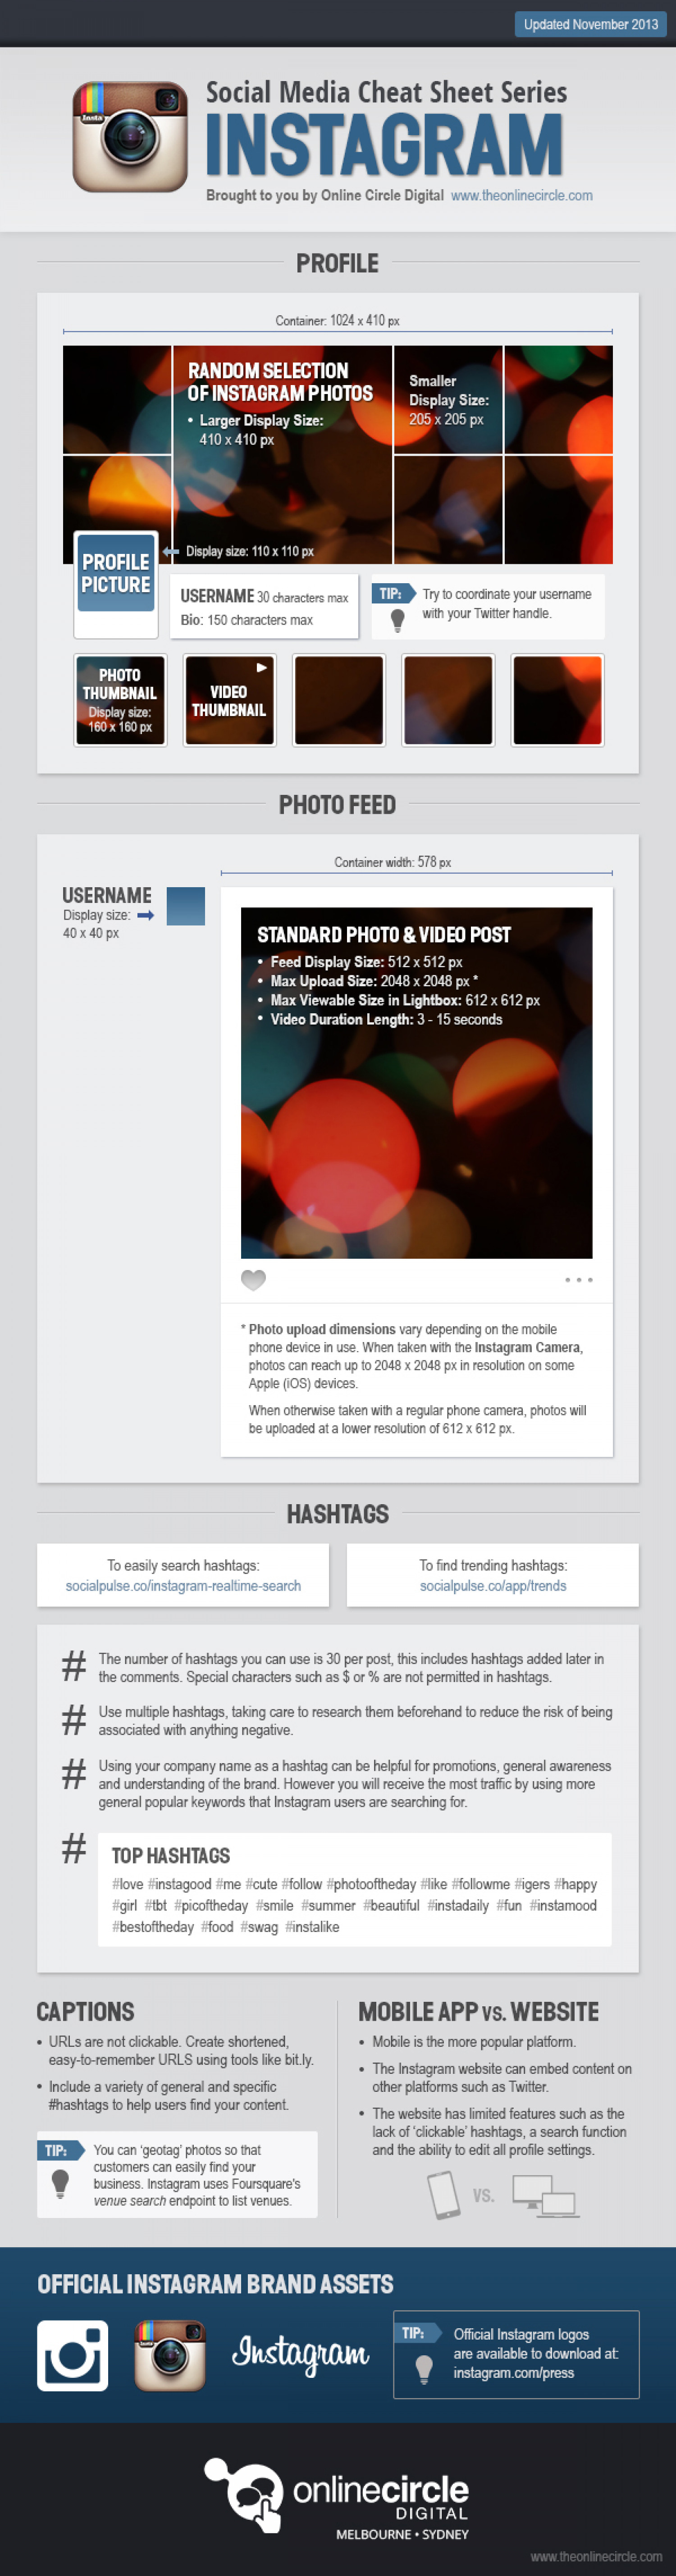 Instagram Sizes and Dimensions Cheat Sheet 2013 Infographic